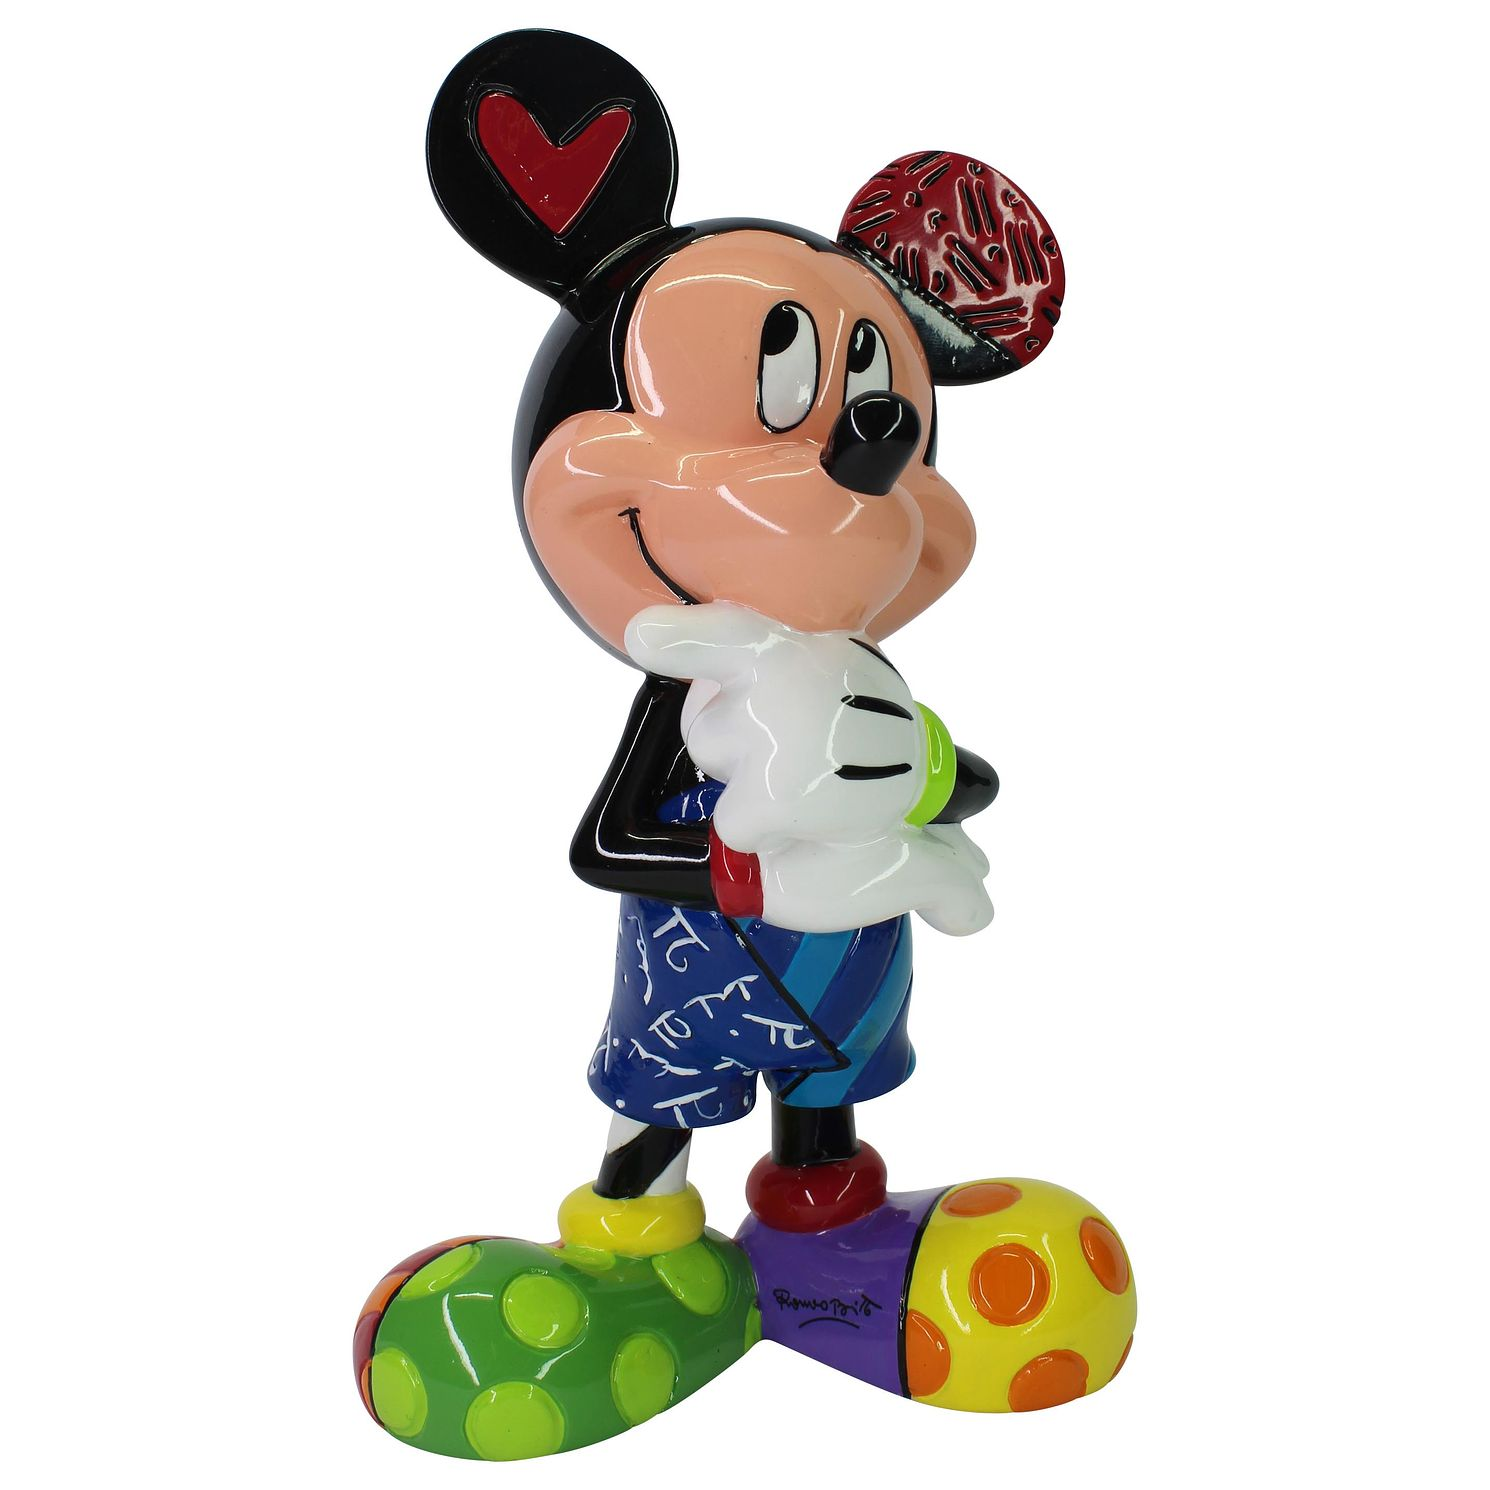 Disney Britto Mickey Mouse Mini Figurine - Product number 2950707